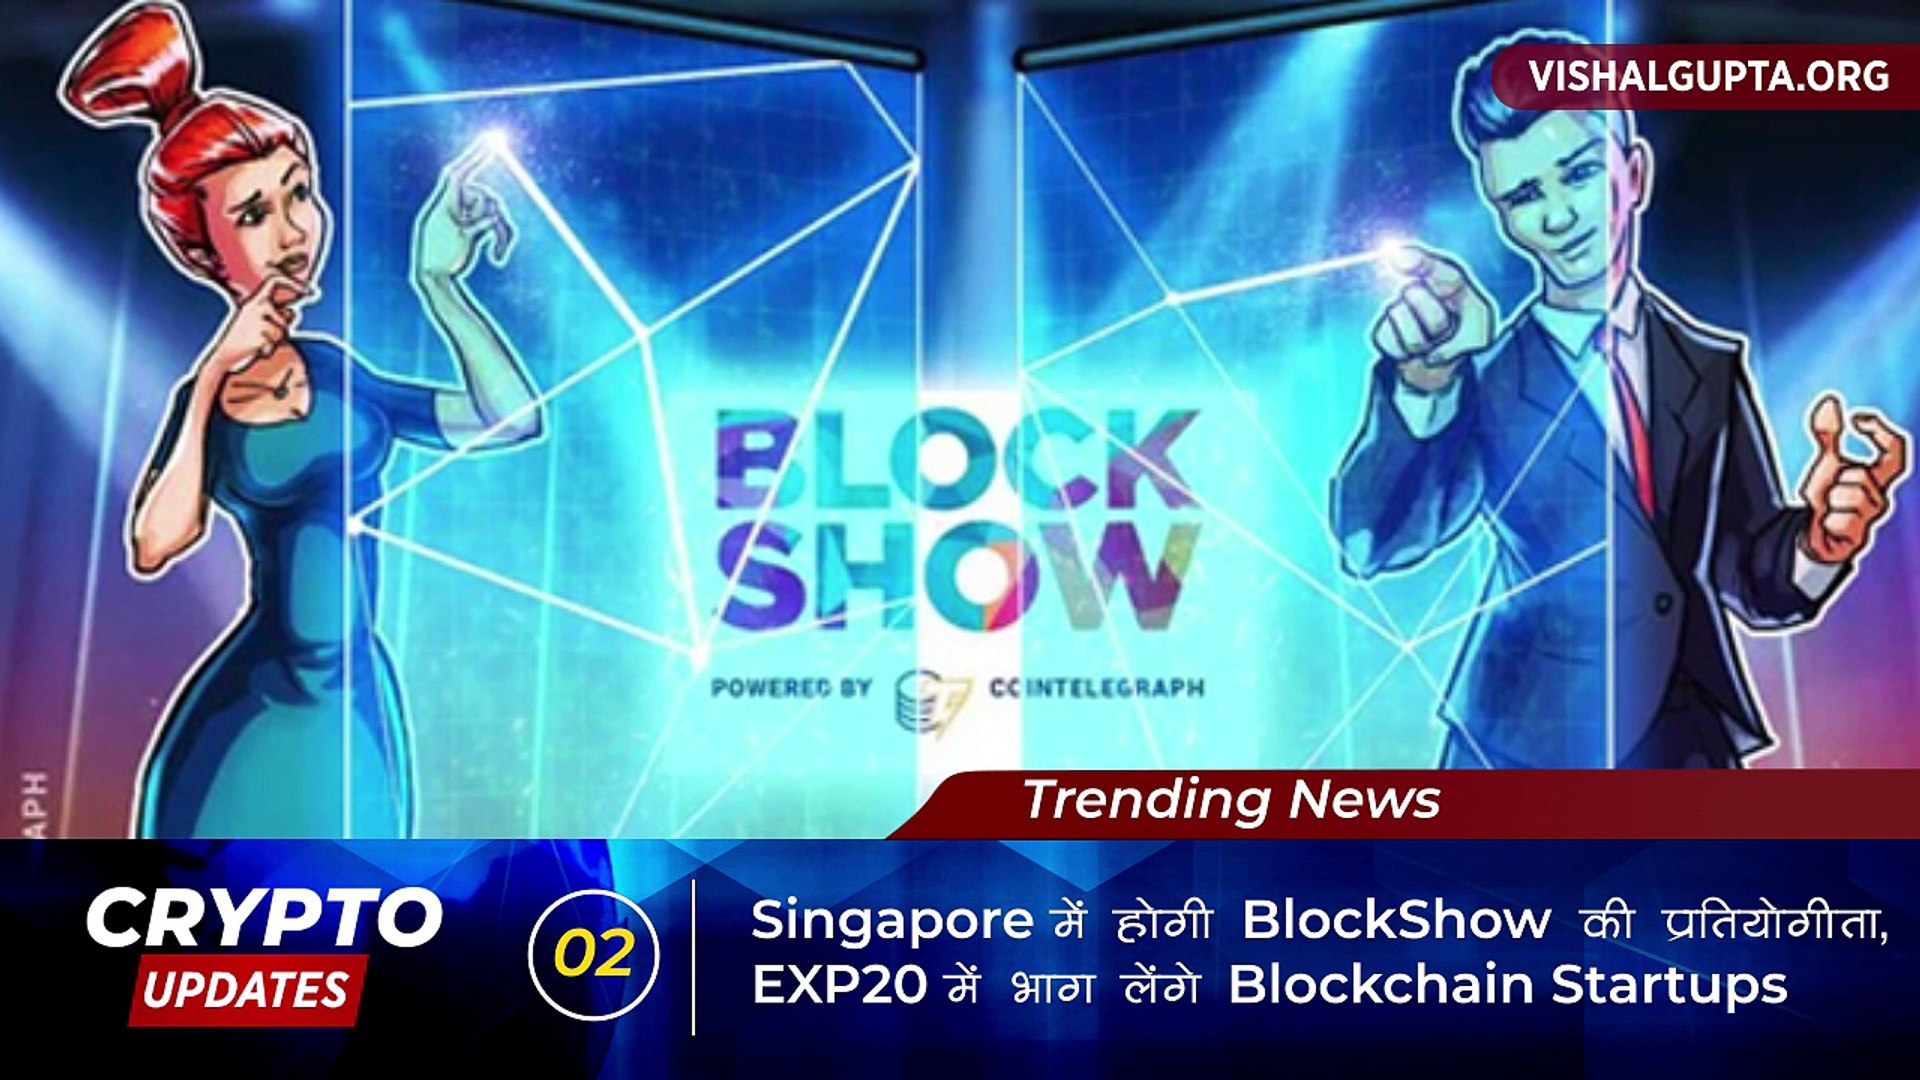 Hindi | Crypto Updates #28 - Bitcoin Prediction, EXP20 Competition, Venezuelan Crypto Bill Passed